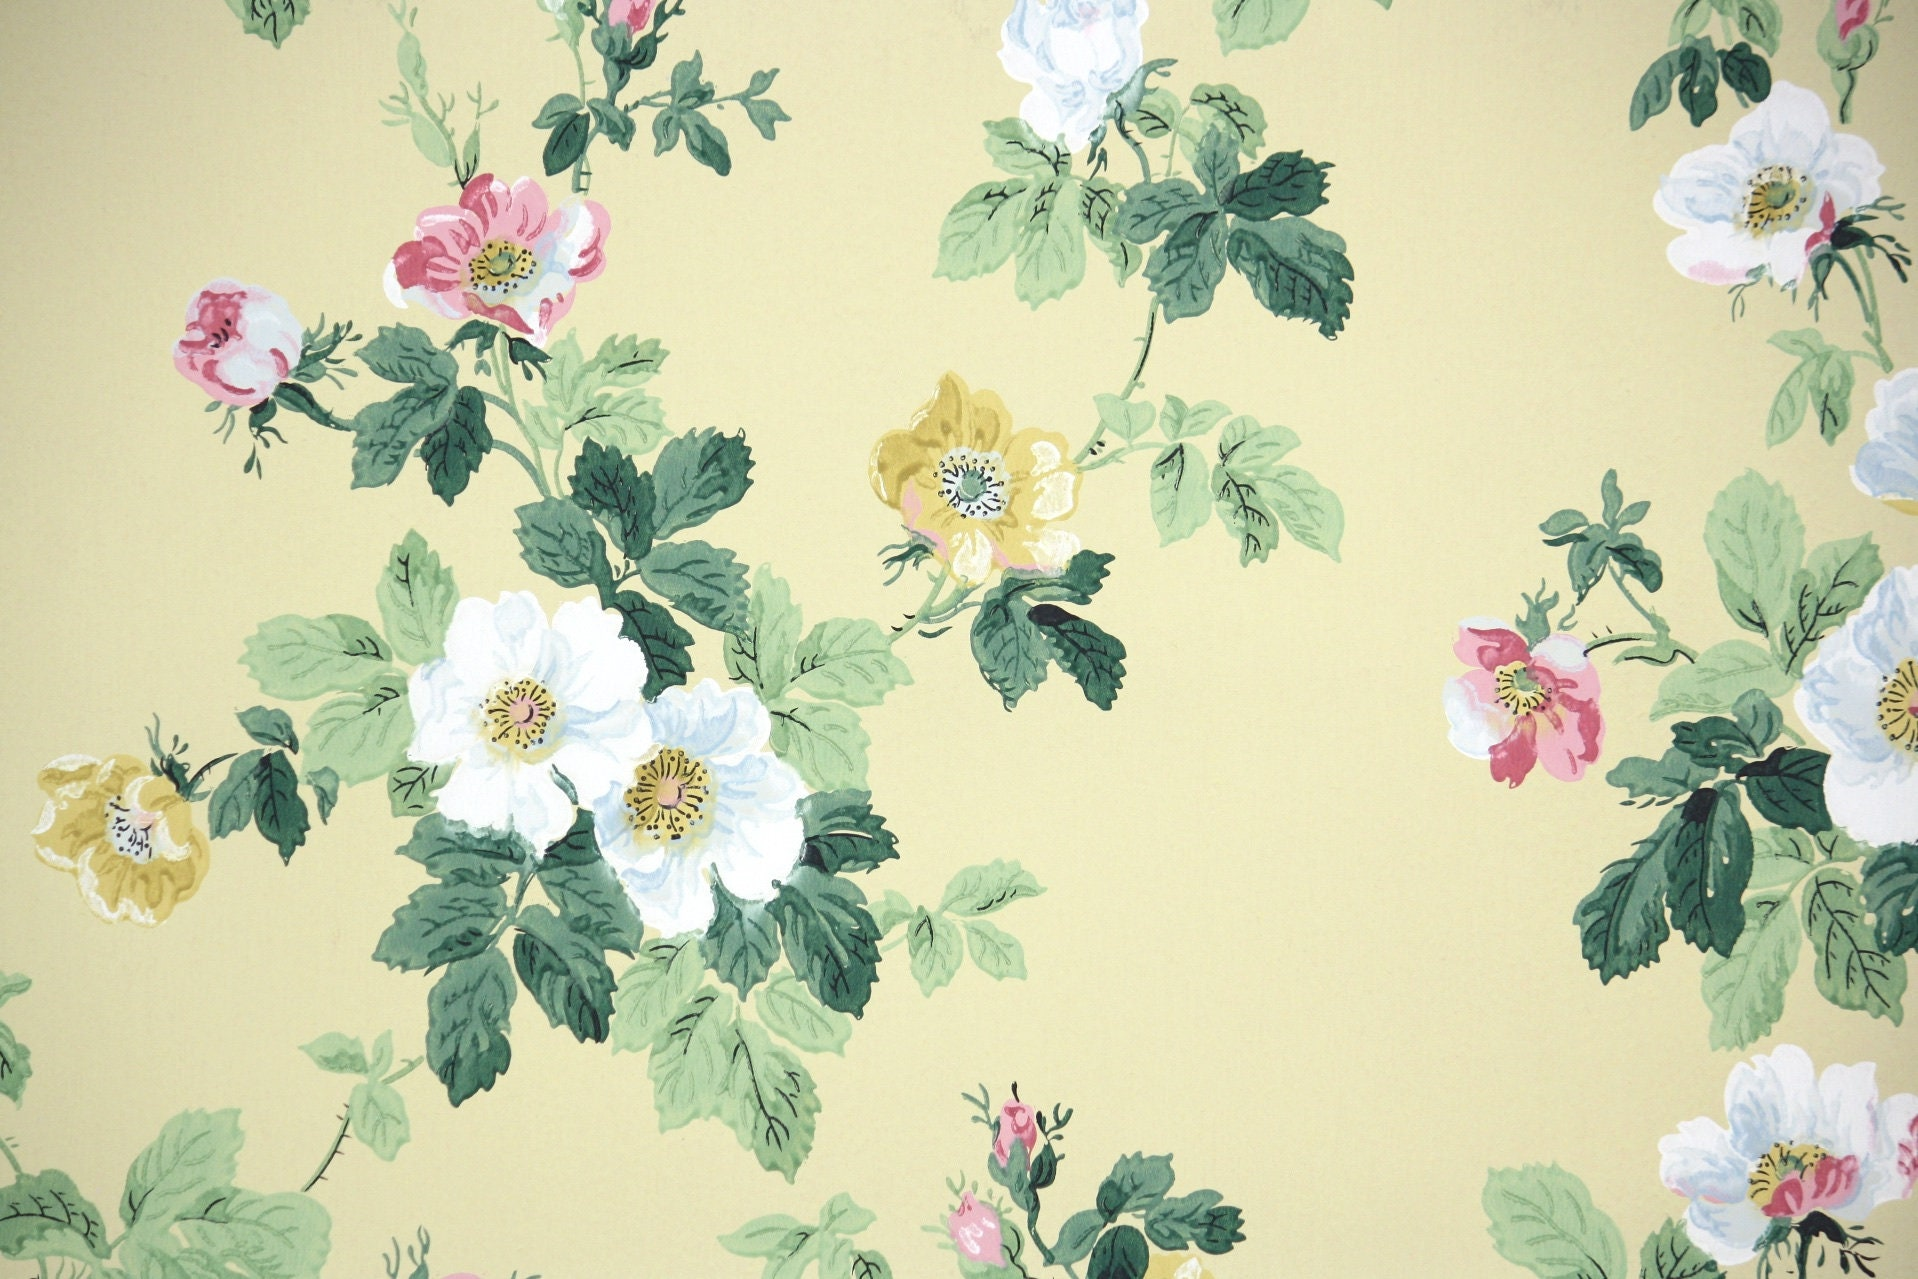 1950s Vintage Wallpaper By The Yard Floral Vintage Wallpaper Etsy